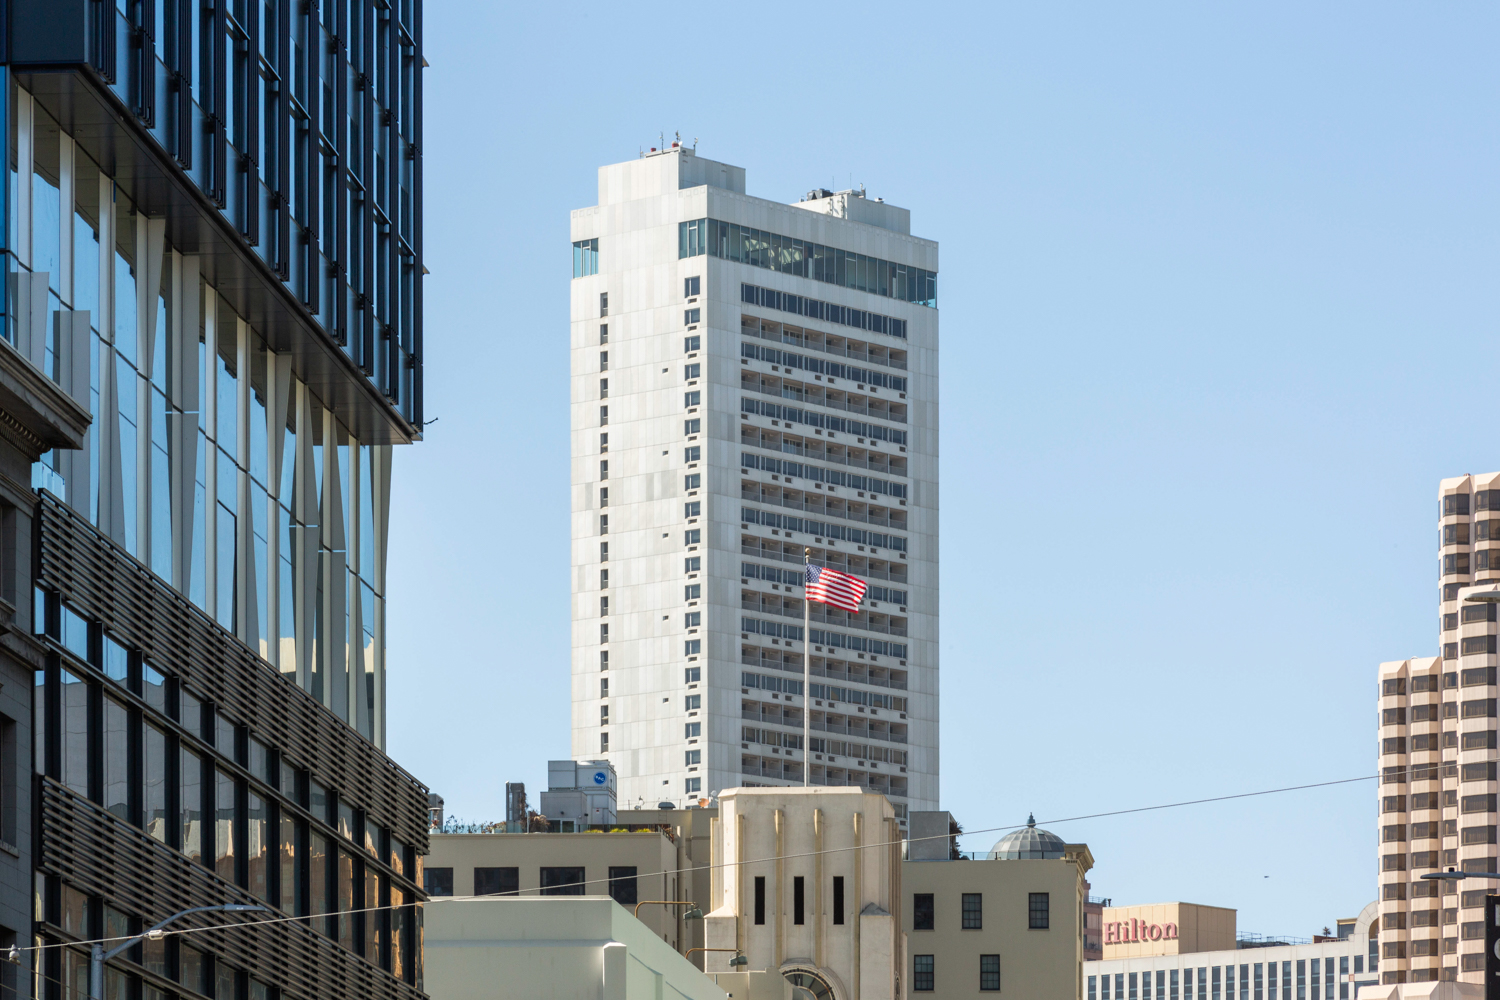 333 O'Farrell Street pinnacle viewed from 5M construction site, image by Andrew Campbell Nelson